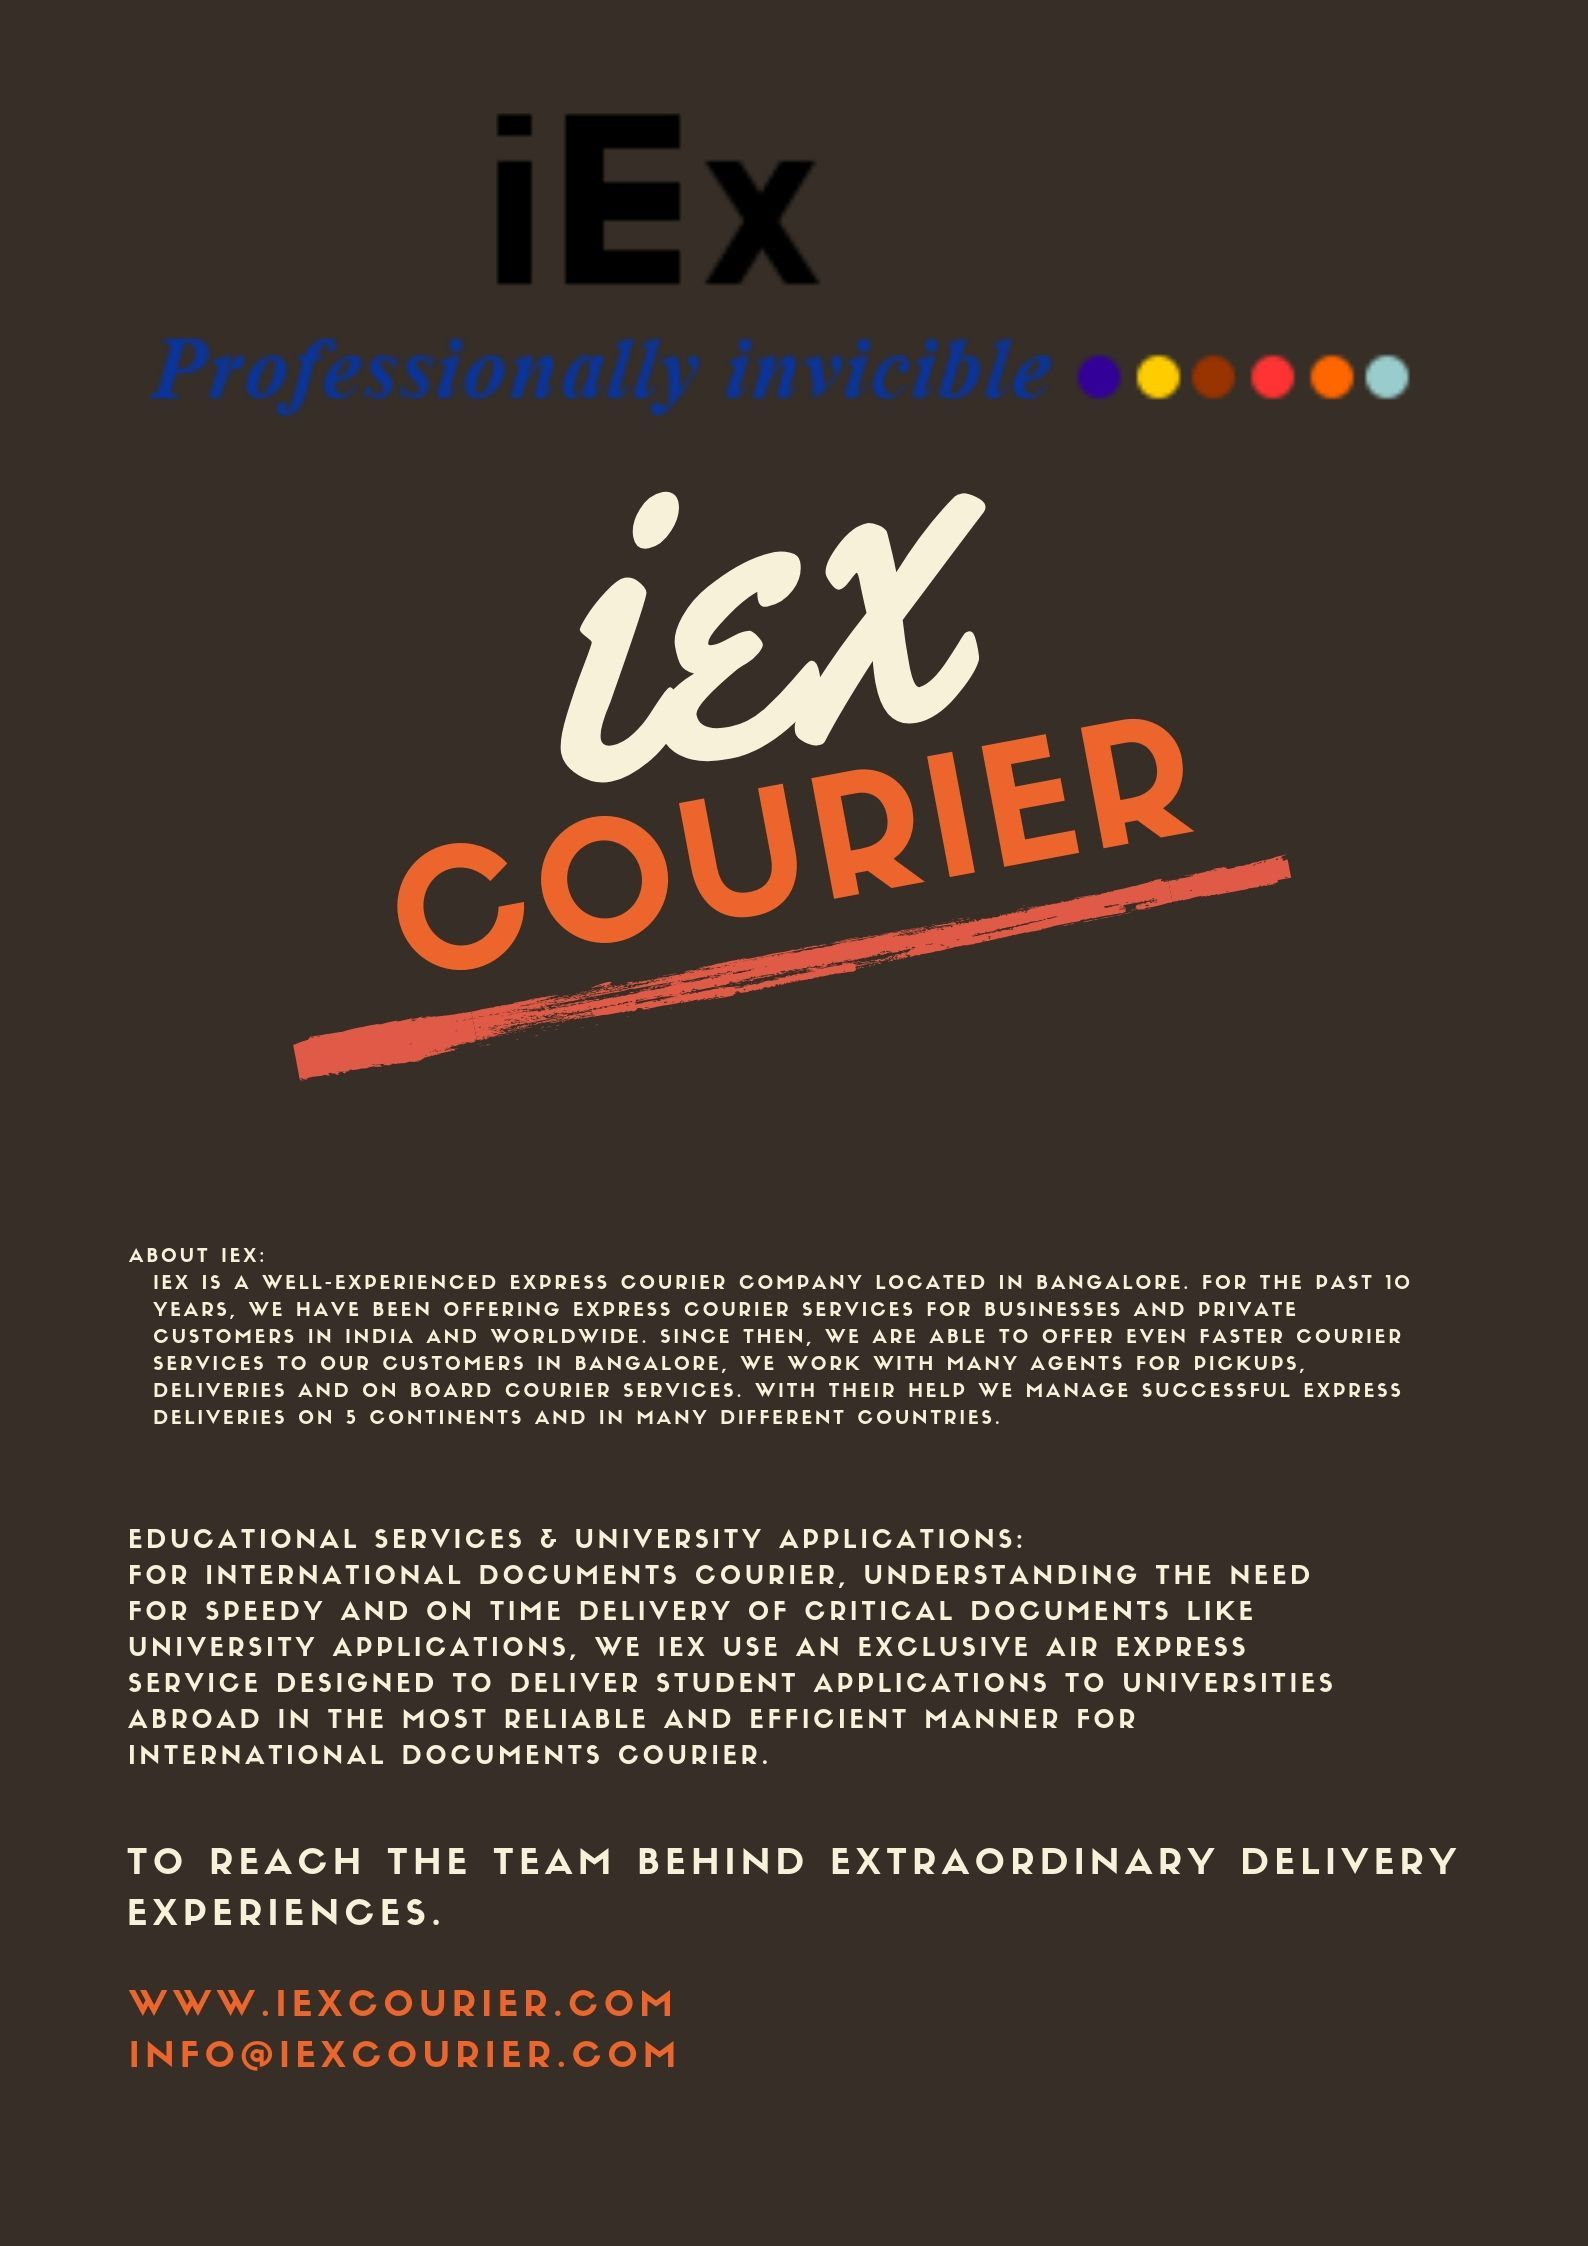 IEX is a wellexperienced express courier company located